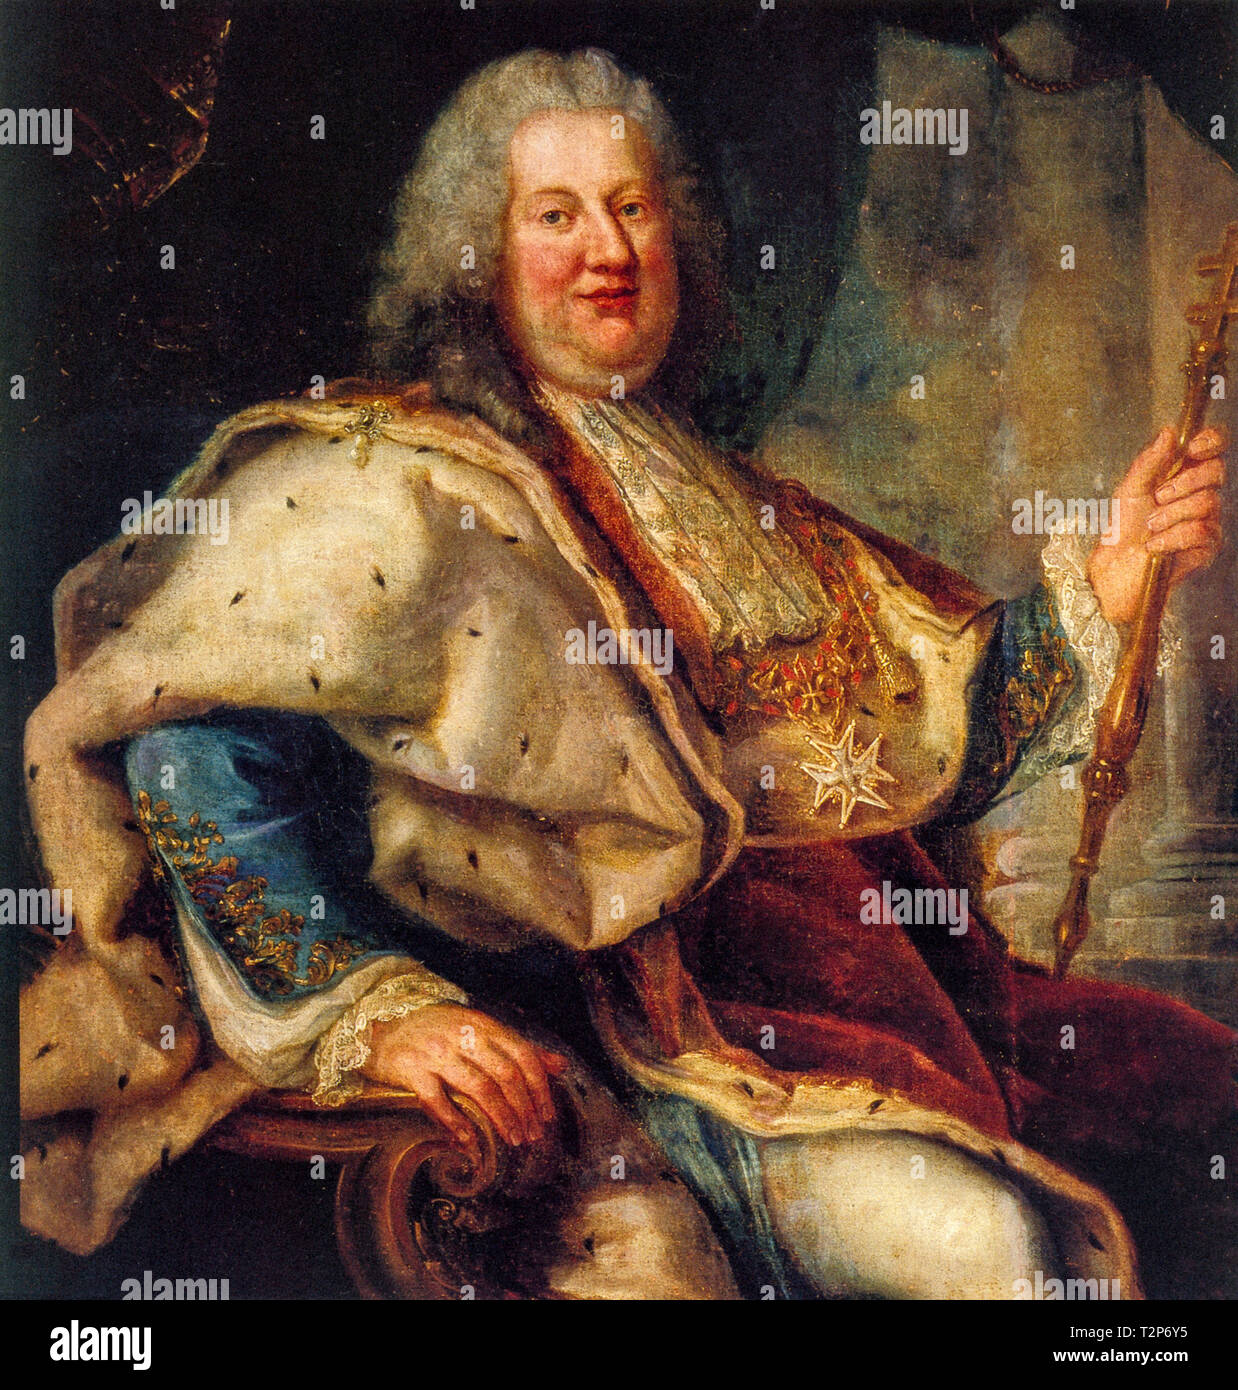 Stanislaus I Leszczynski, also known as Stanislaw Boguslaw Leszczynski (Lviv, 20 October 1677 -  Lunéville, 23 February 1766), was a Polish nobleman, became king of Poland and grand duke of Lithuania, first (1704 - 1709) during the Great War of North, then again (1733 - 1736) - Stock Image